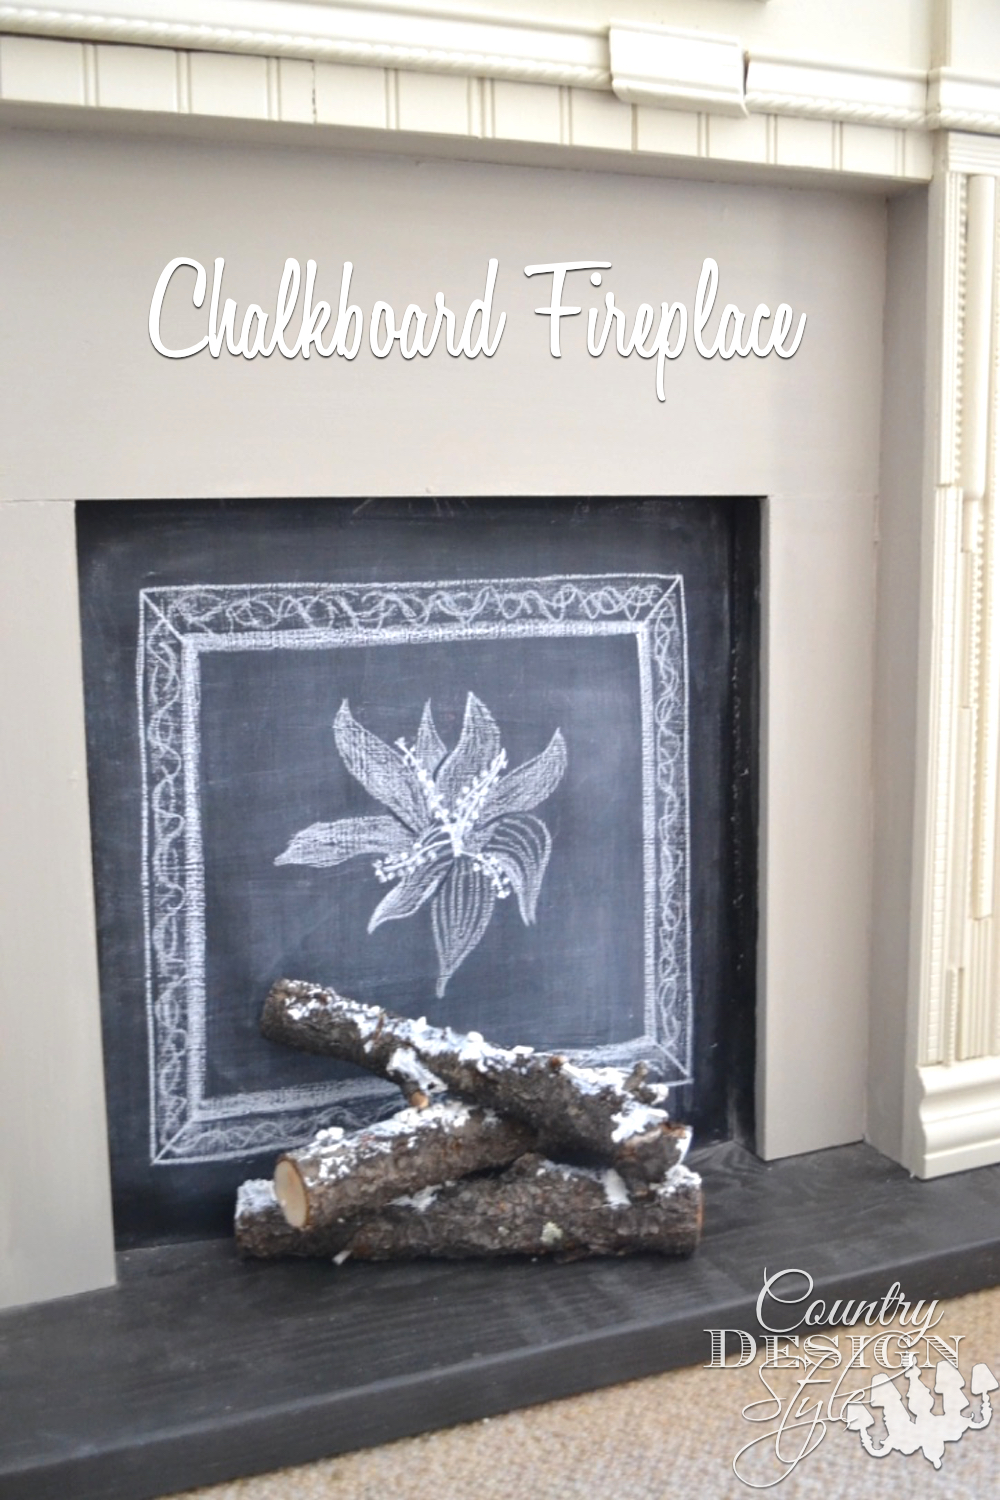 Framed plates and chalkboard fireplace | Country Design Style | countrydesignstyle.com